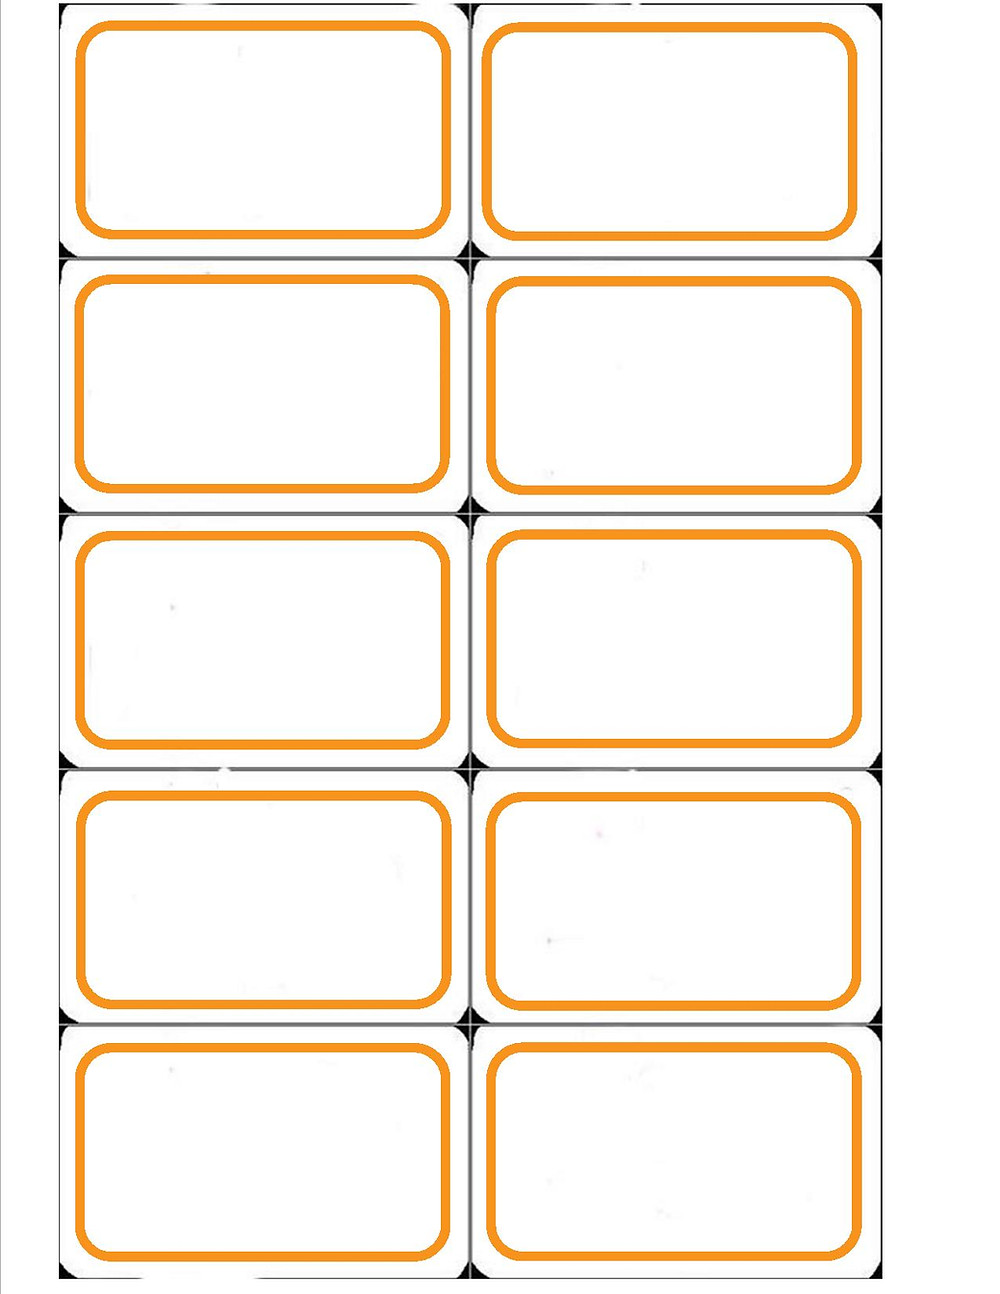 Make Your Own Board Game Intended For Chance Card Template